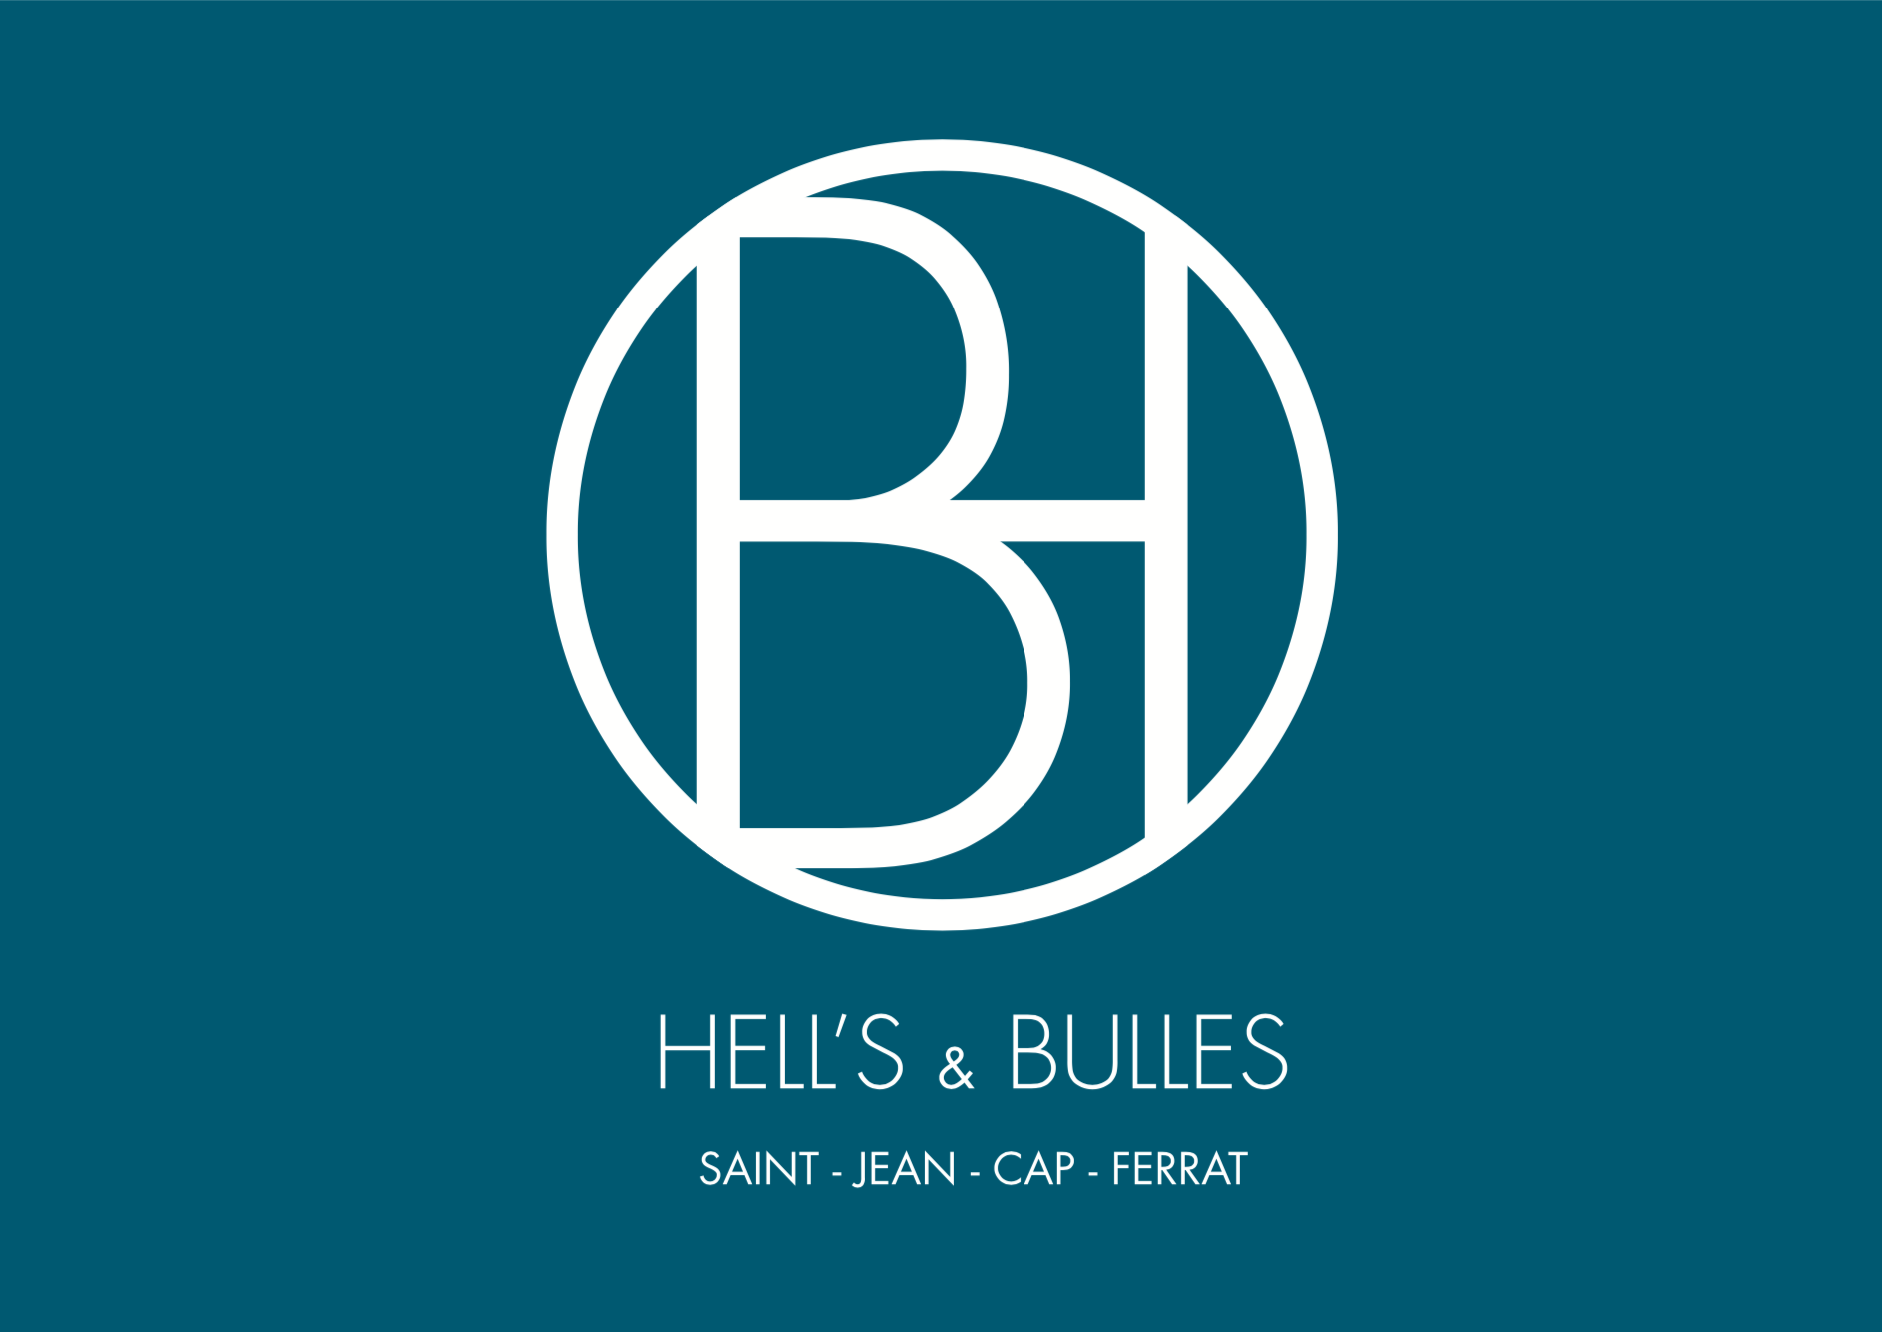 HELL'S & BULLES